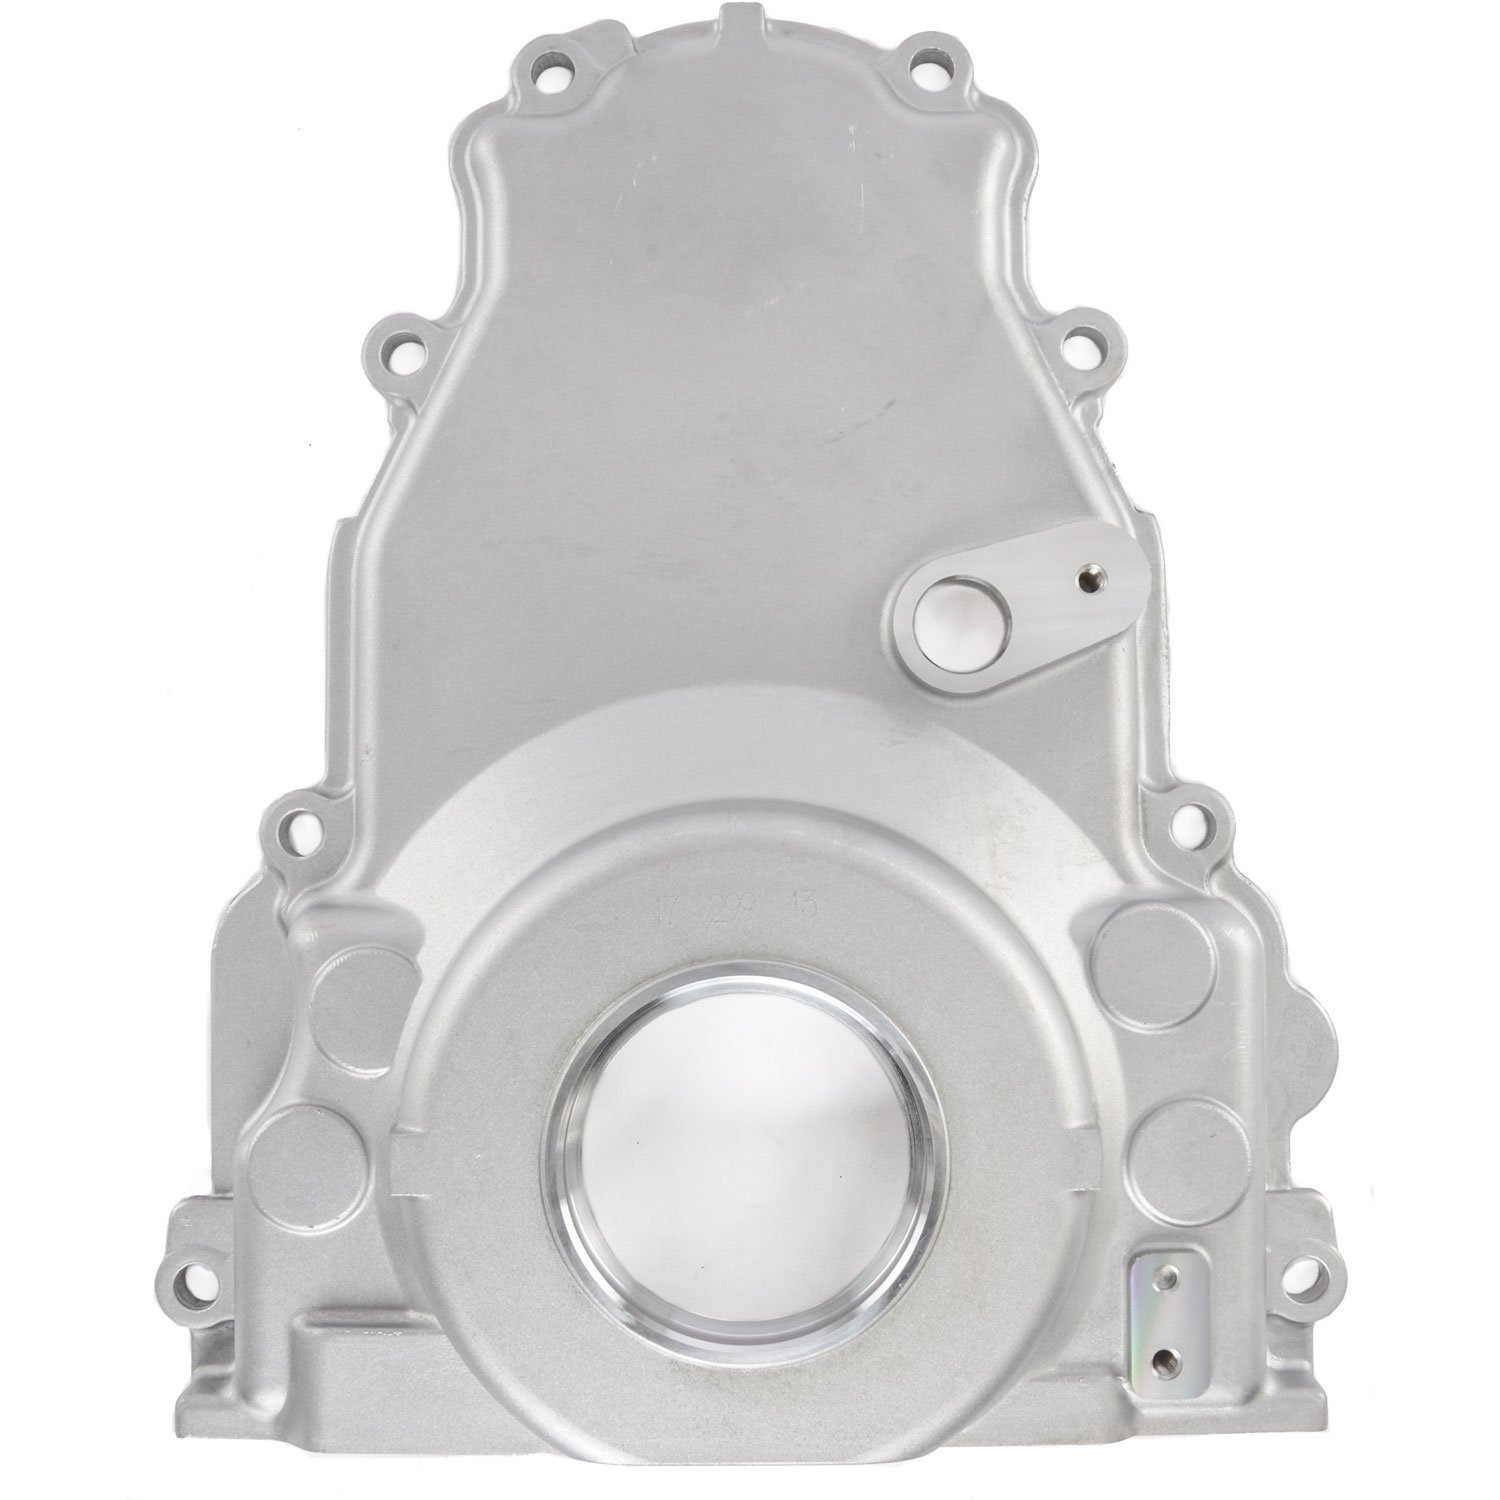 Chevrolet Performance 12562818 Timing Chain Cover: Chevy 12600326: Timing Chain Cover GM LS2/LS3 Non-VVT